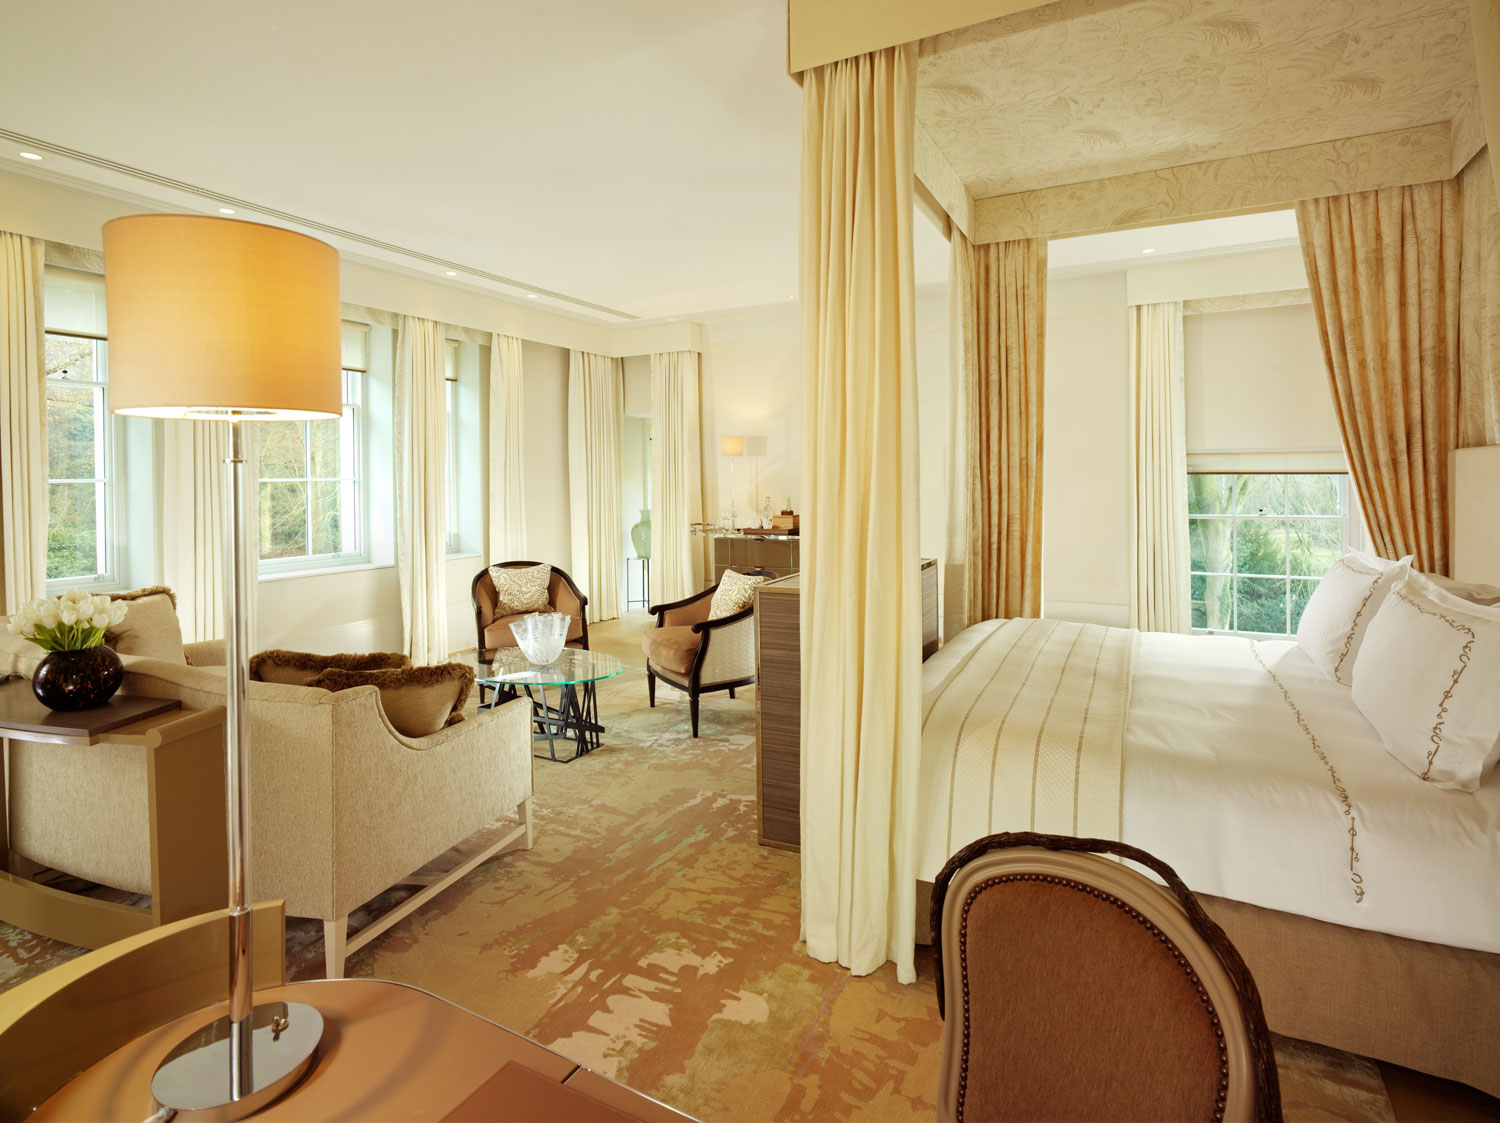 Executive Suite at Coworth Park